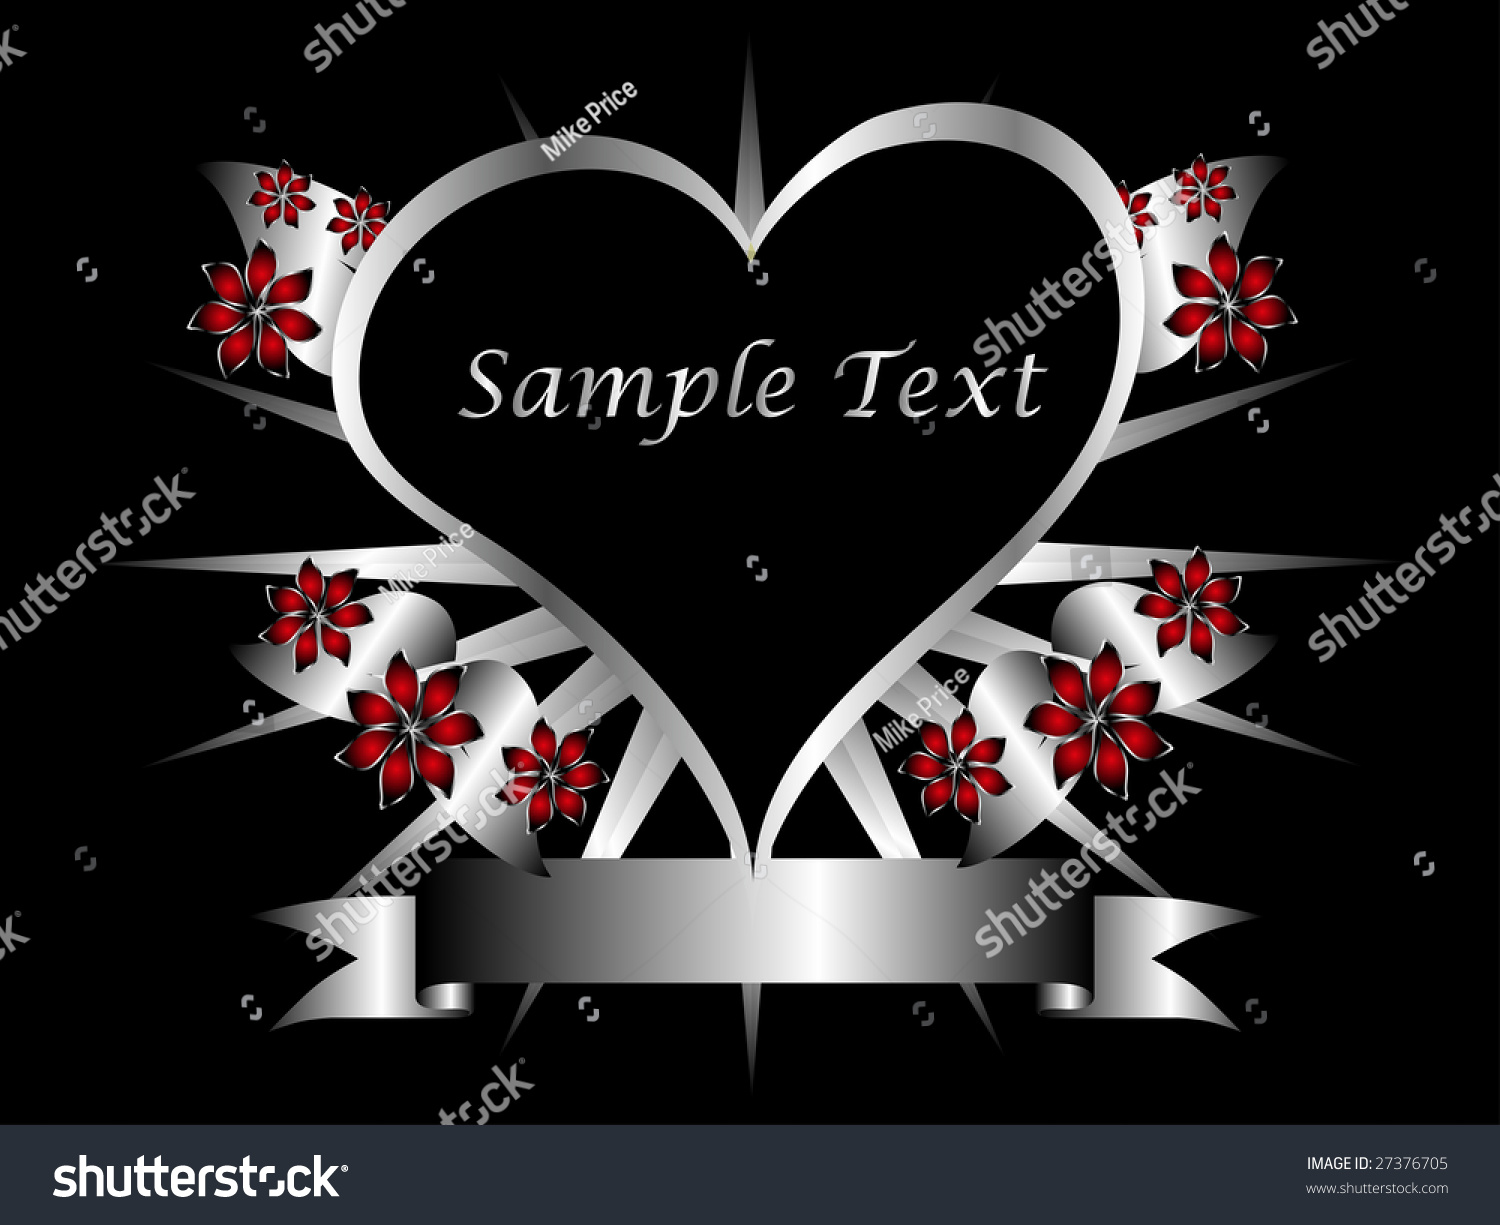 A Gothic Silver Floral Hearts Design With Room For Text On Black Background